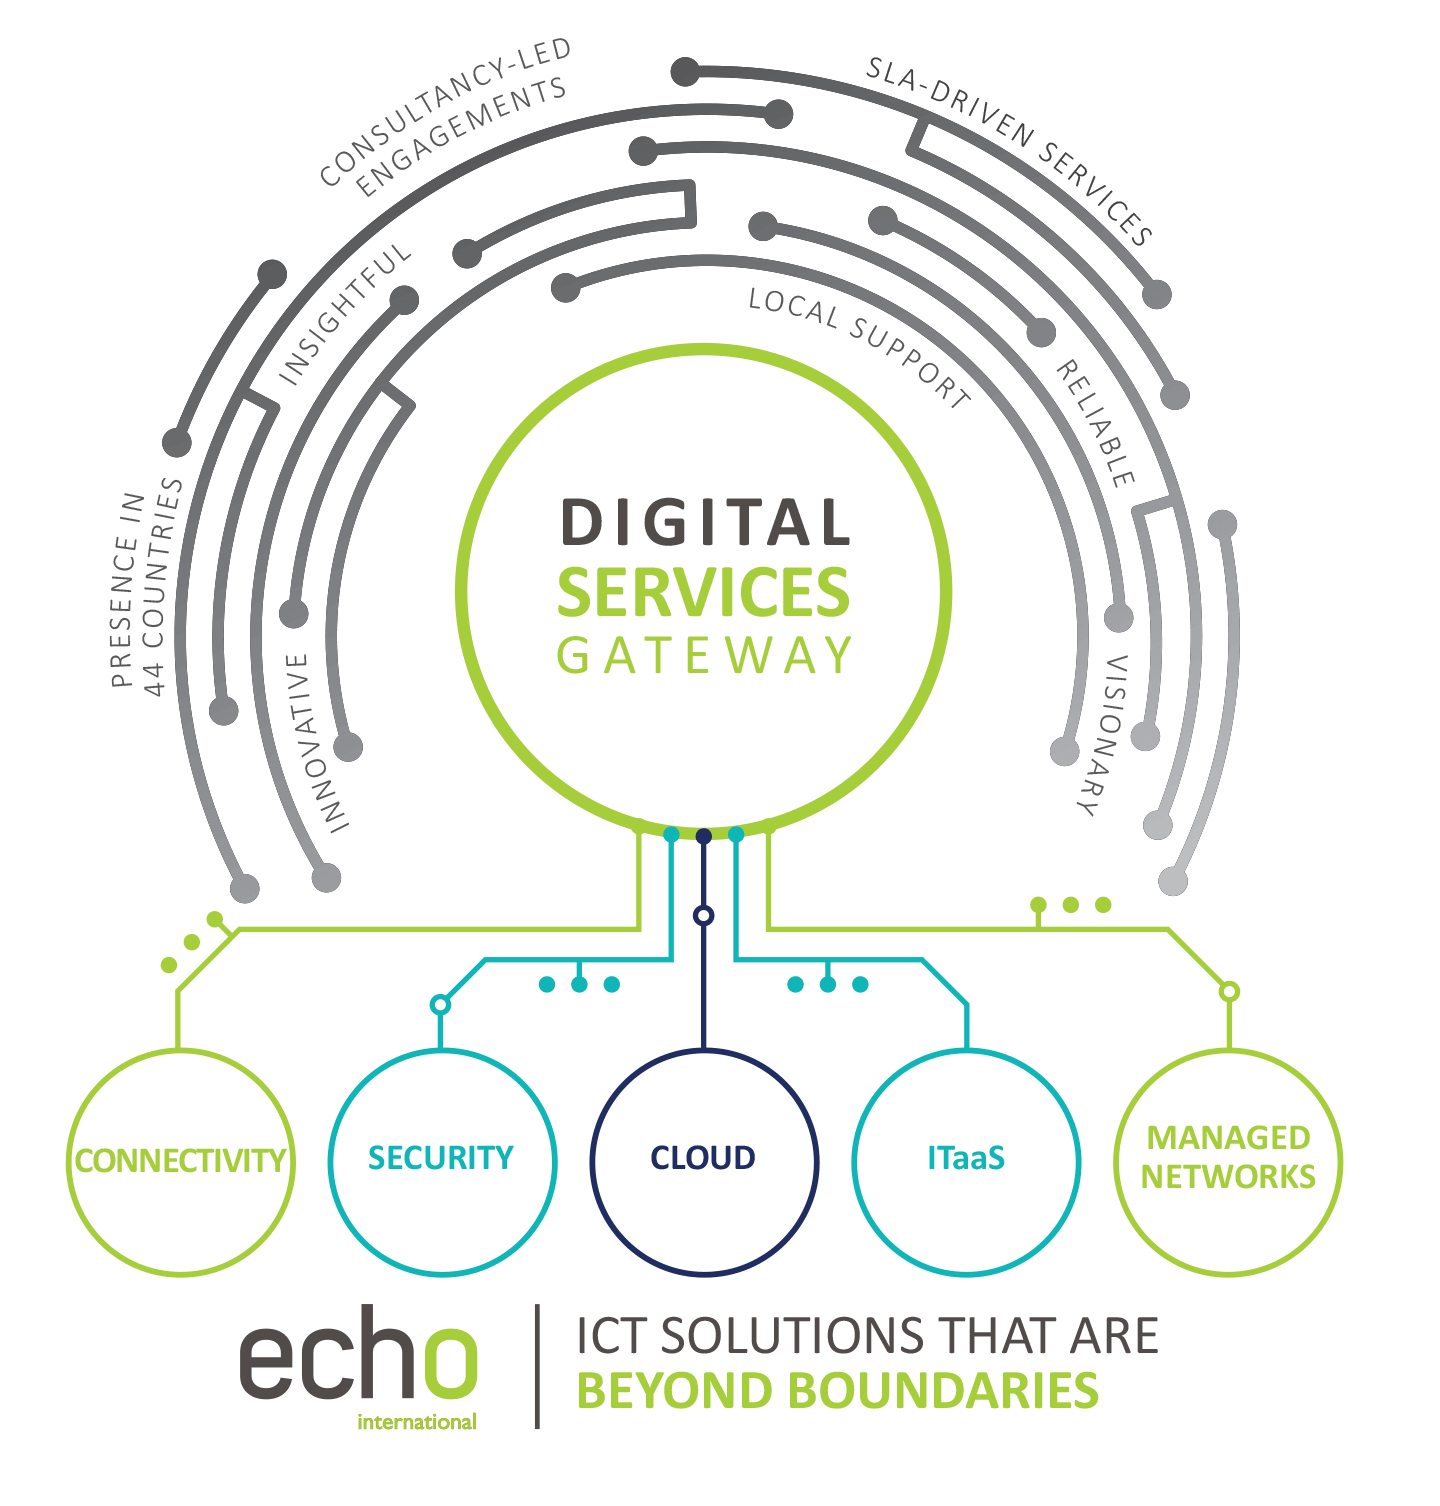 Echo International is a cloud-based, pan-African ICT service provider that delivers value in creative and transformative ways, with a focus on building partnerships with clients, which include SMEs, corporates, and multinational enterprises.